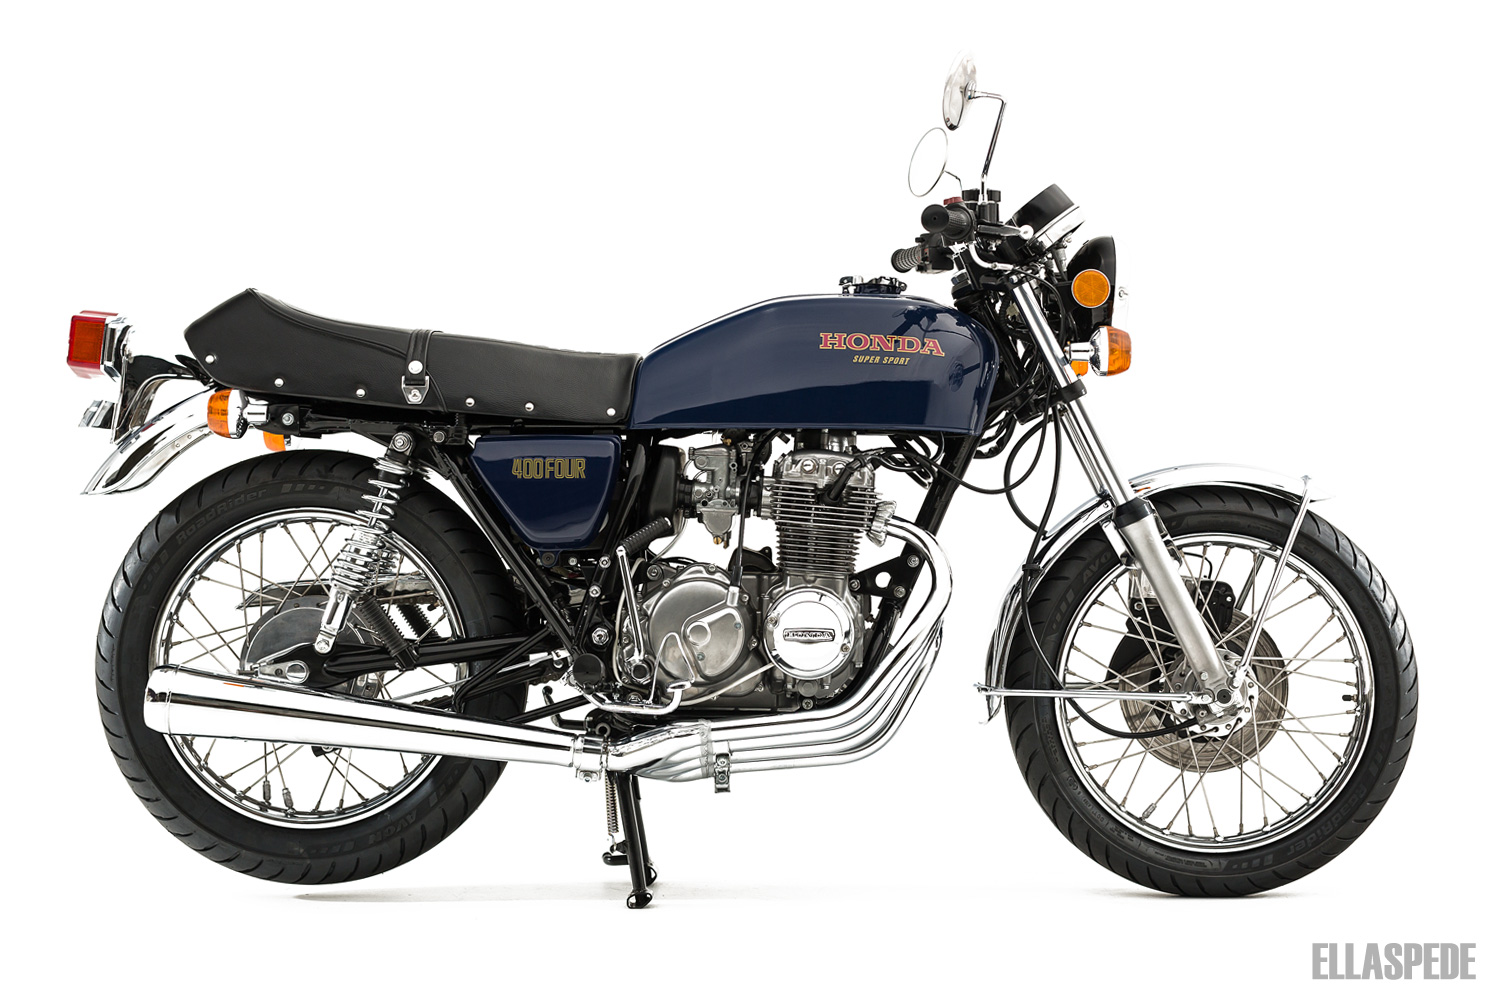 EB330 – 1977 Honda CB400 Supersport image